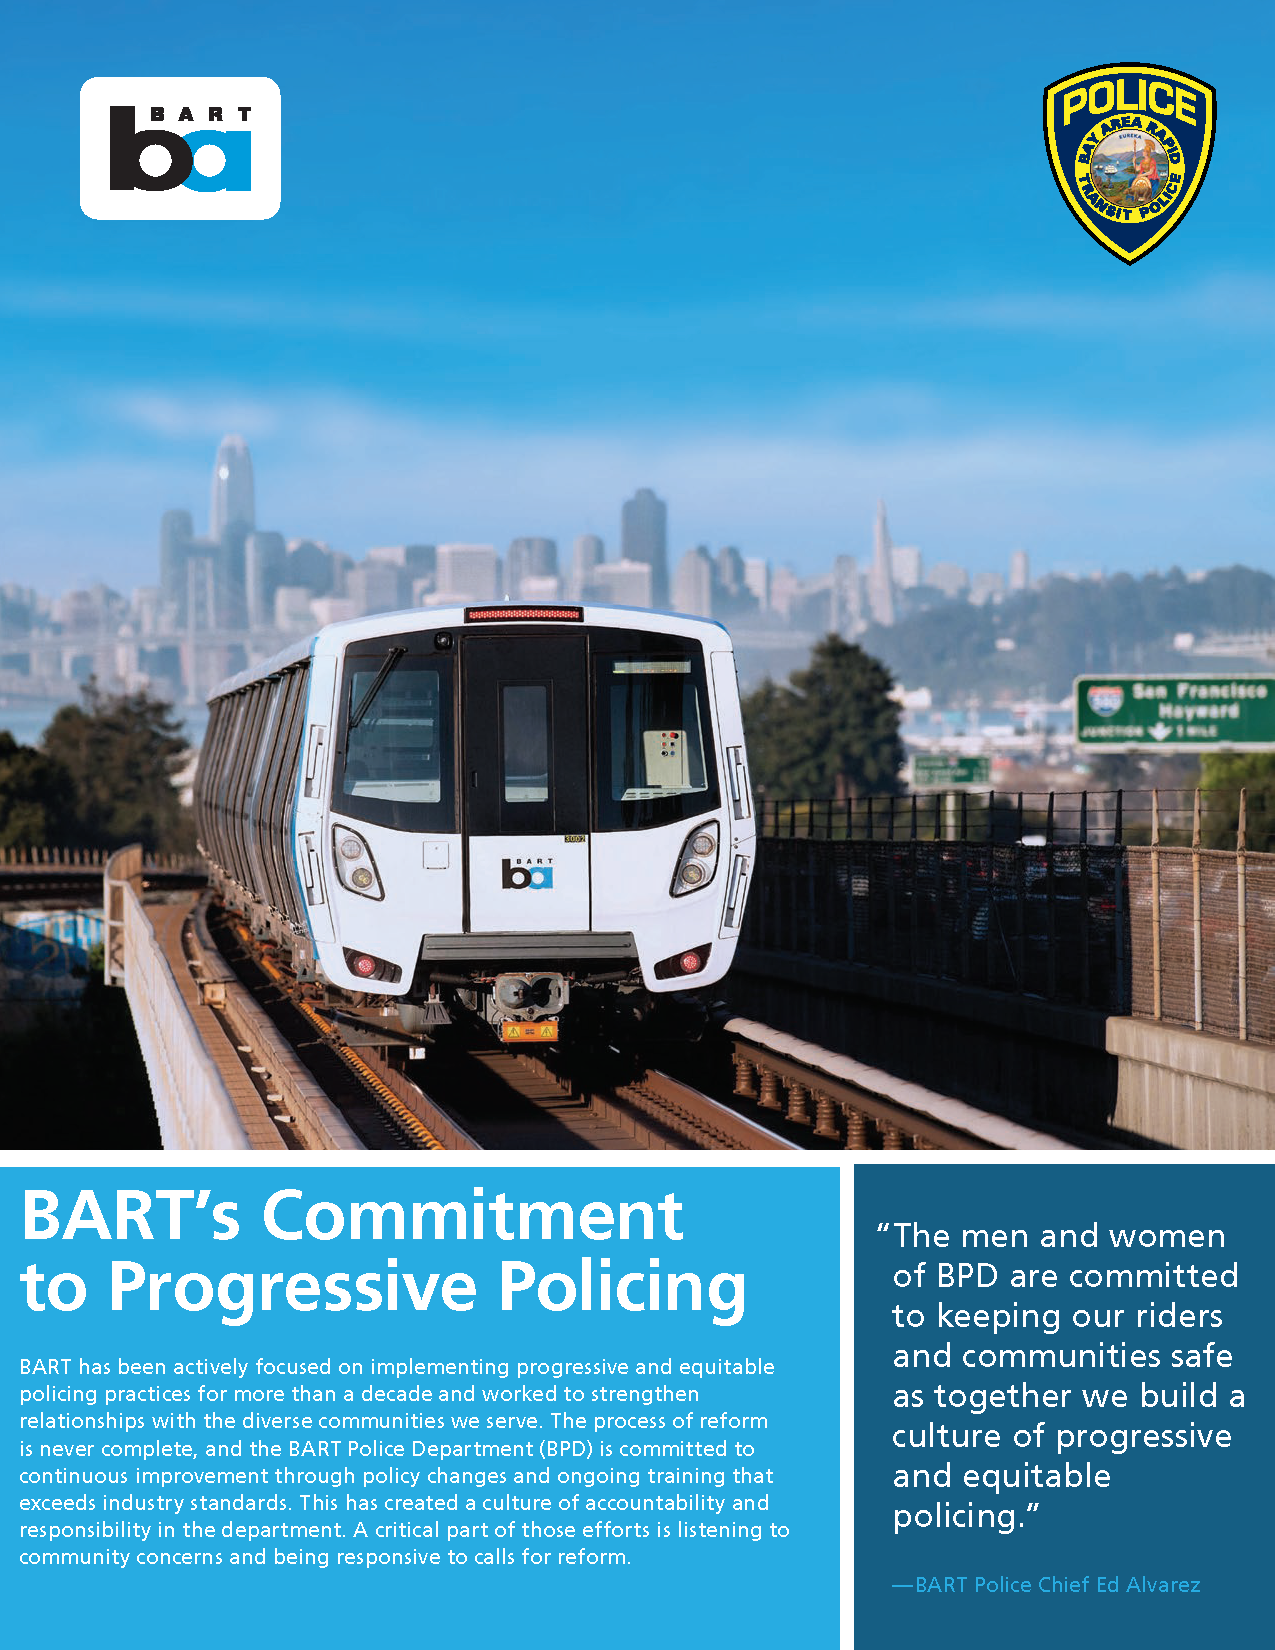 BART's commitment to progressive policing cover page